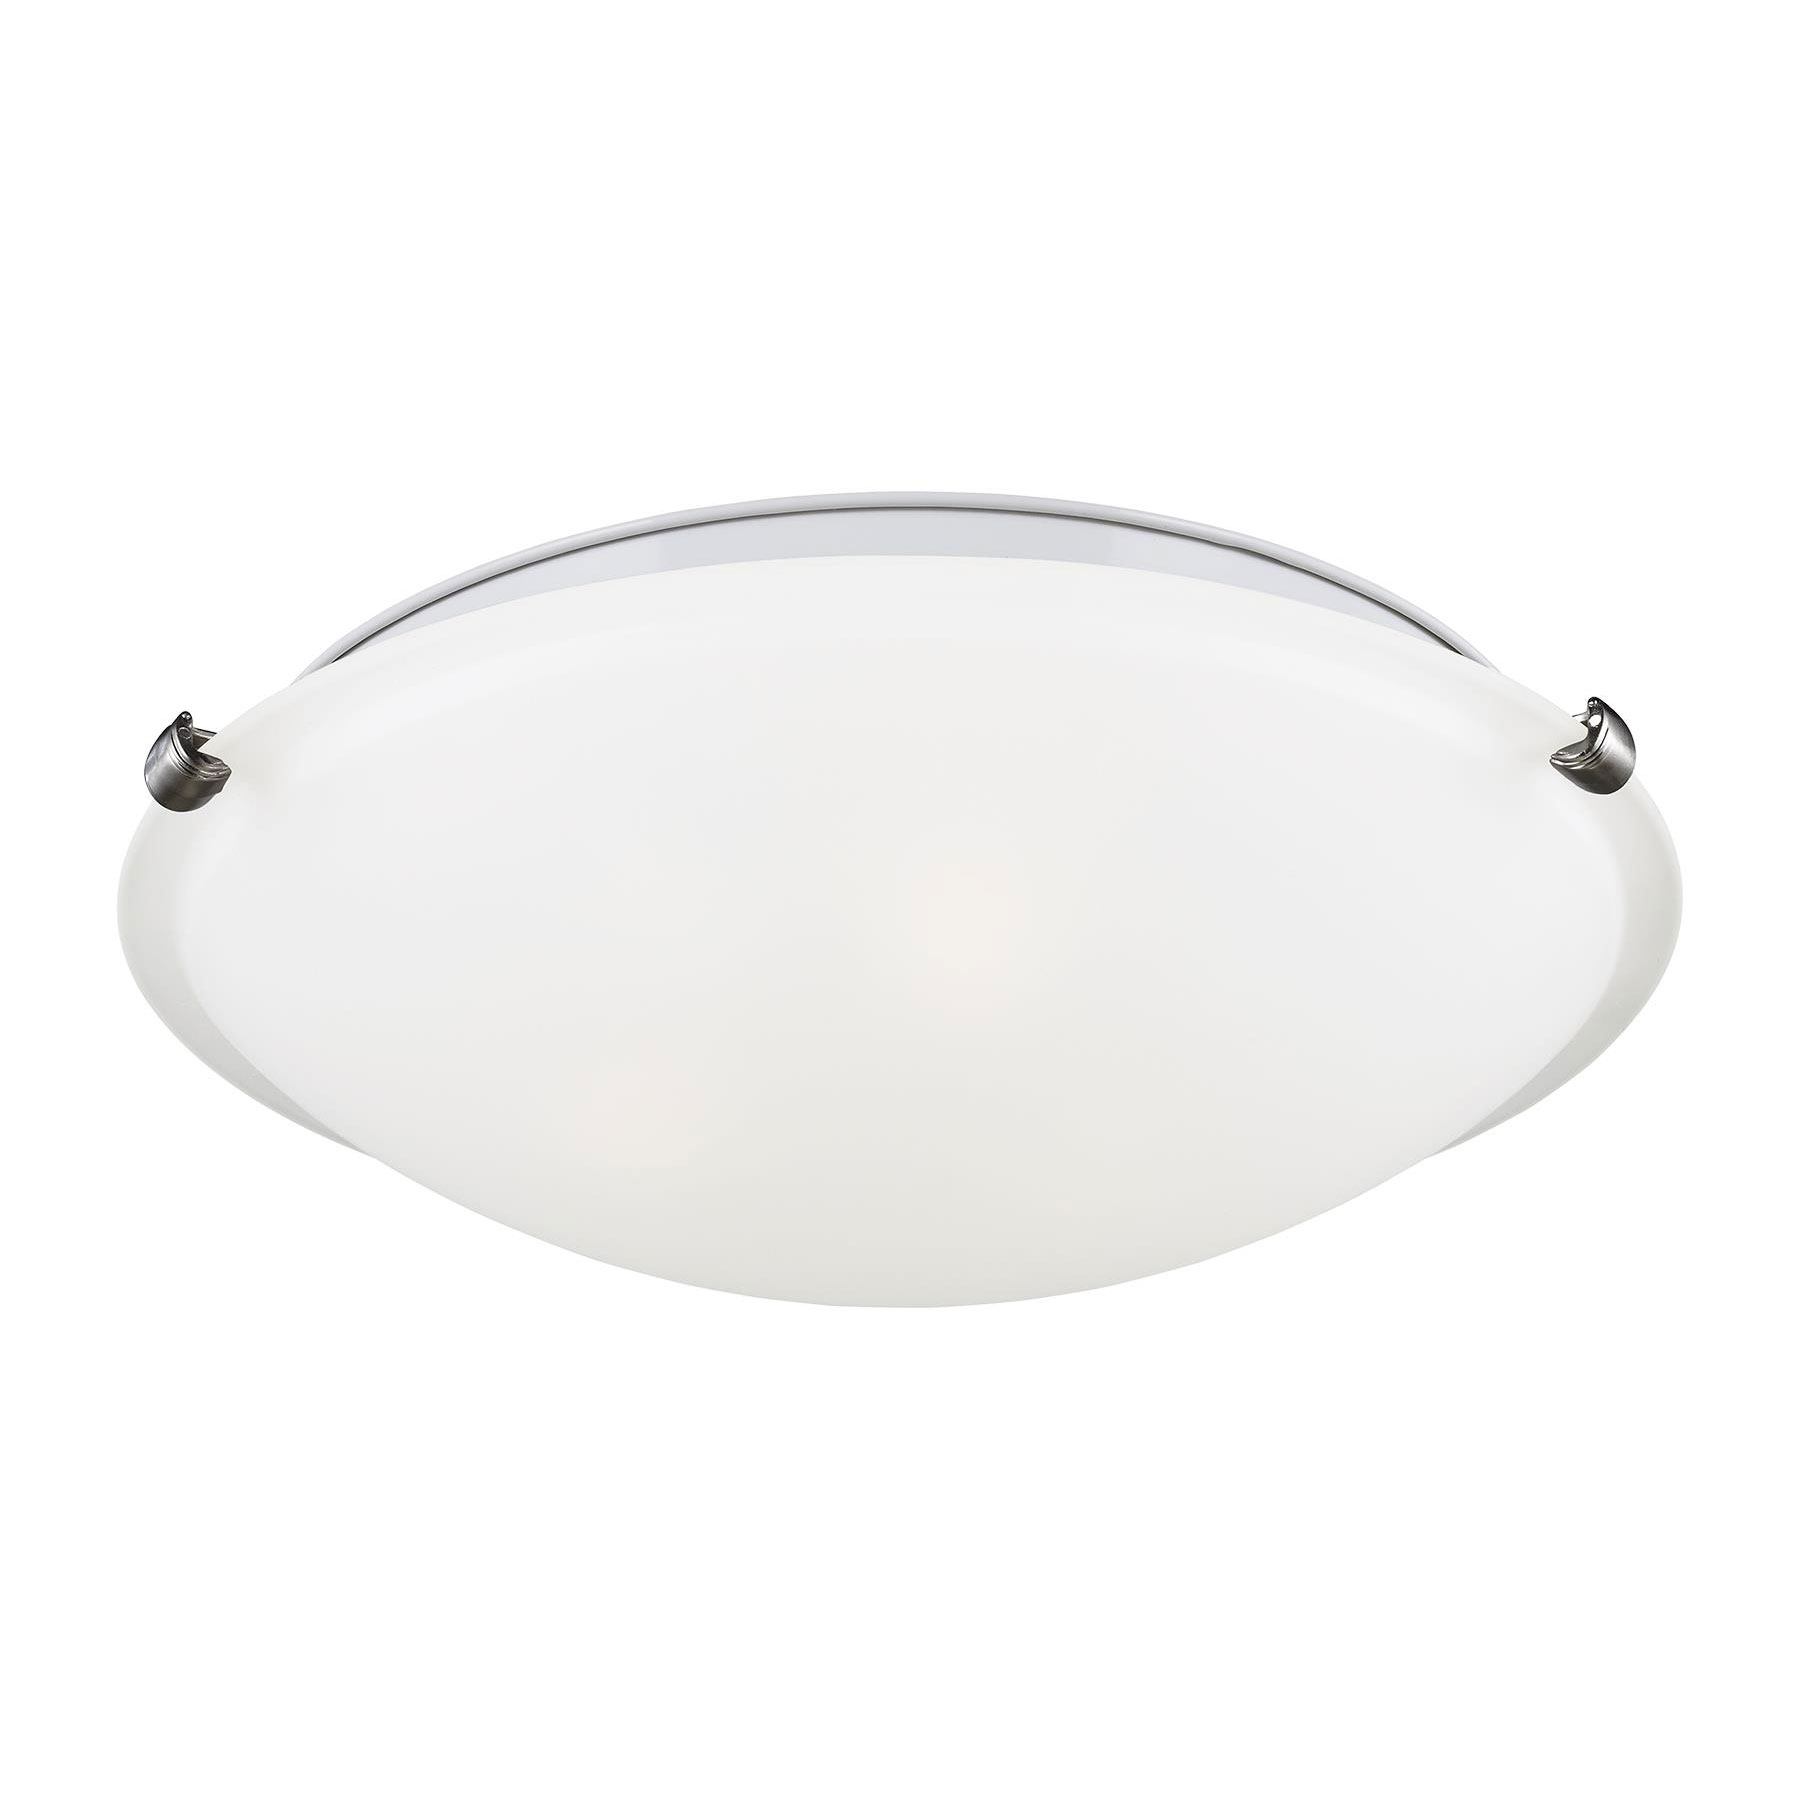 Clip Led Ceiling Light Fixture By Sea